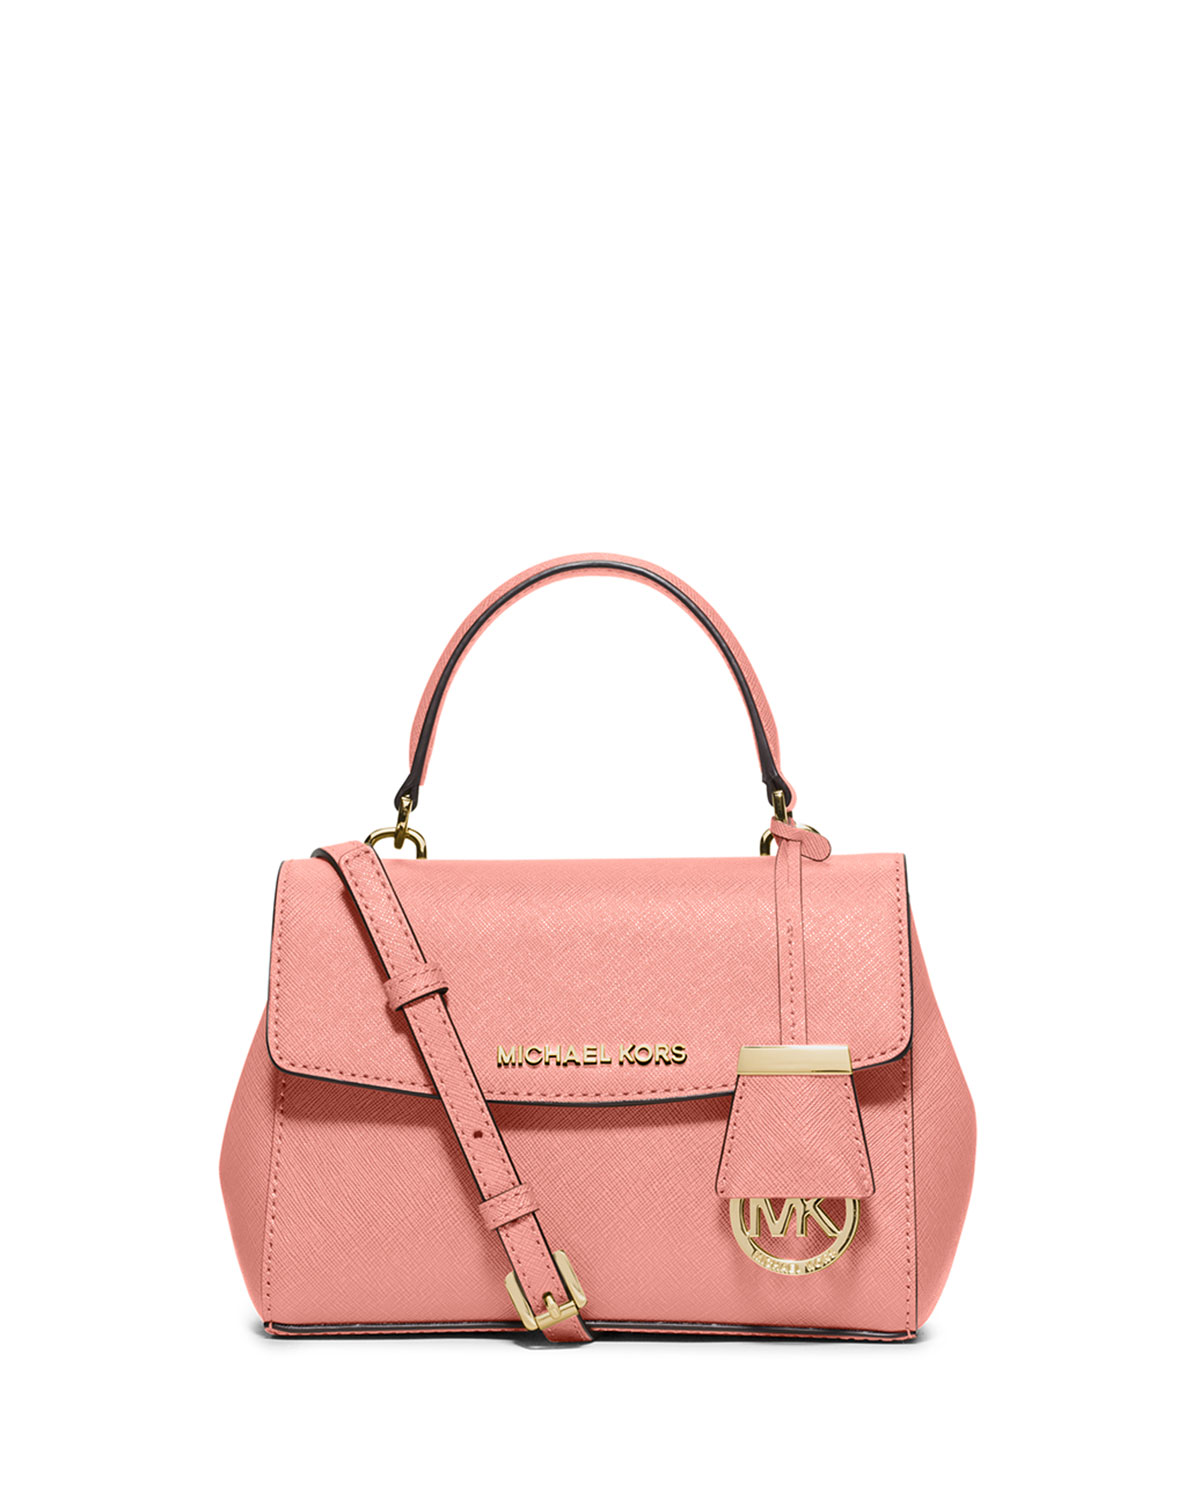 e670b016893adc MICHAEL Michael Kors Ava Extra-Small Saffiano Leather Satchel Bag, Pale Pink